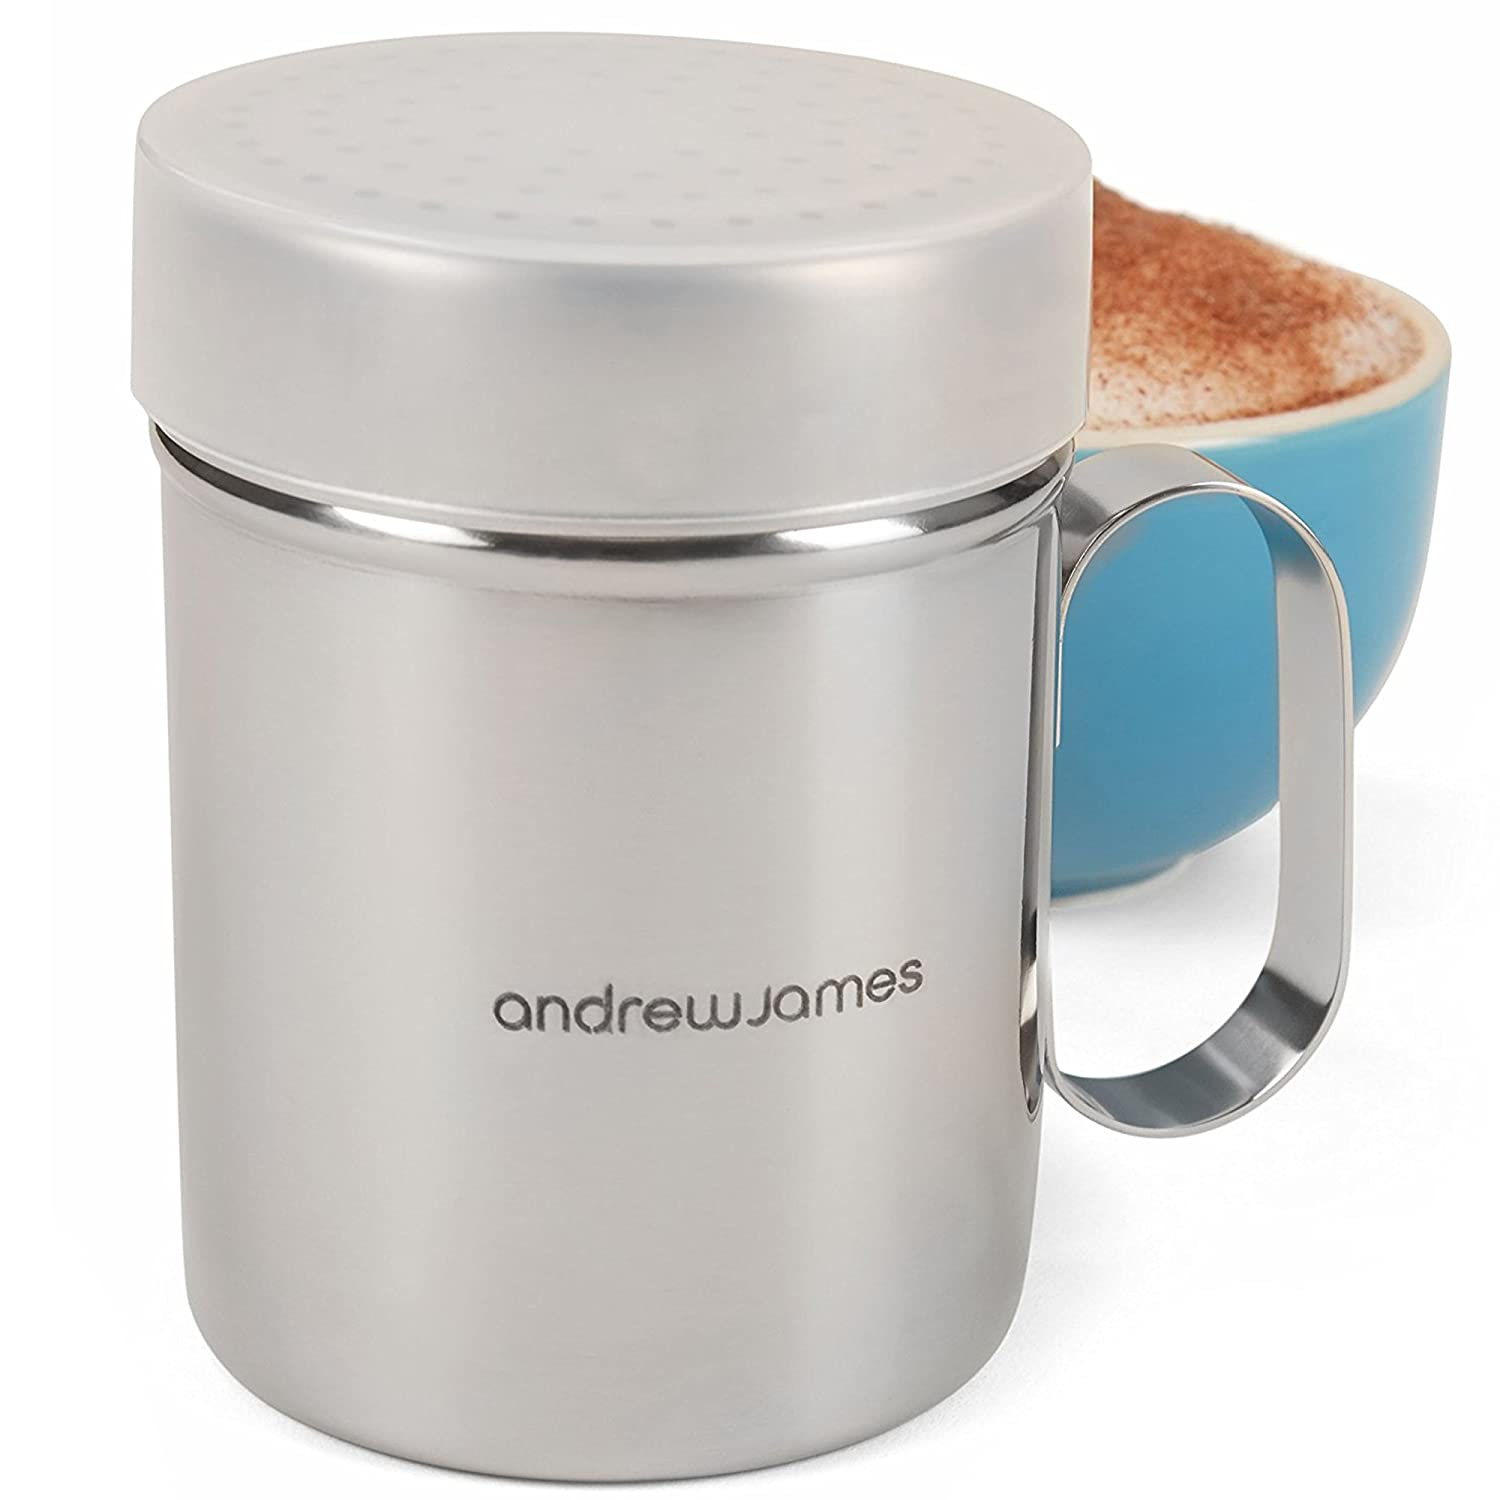 Andrew James Chocolate Shaker for Cappuccino Coffee | 250ml | Stainless Steel Cocoa Spice or Icing Sugar Duster